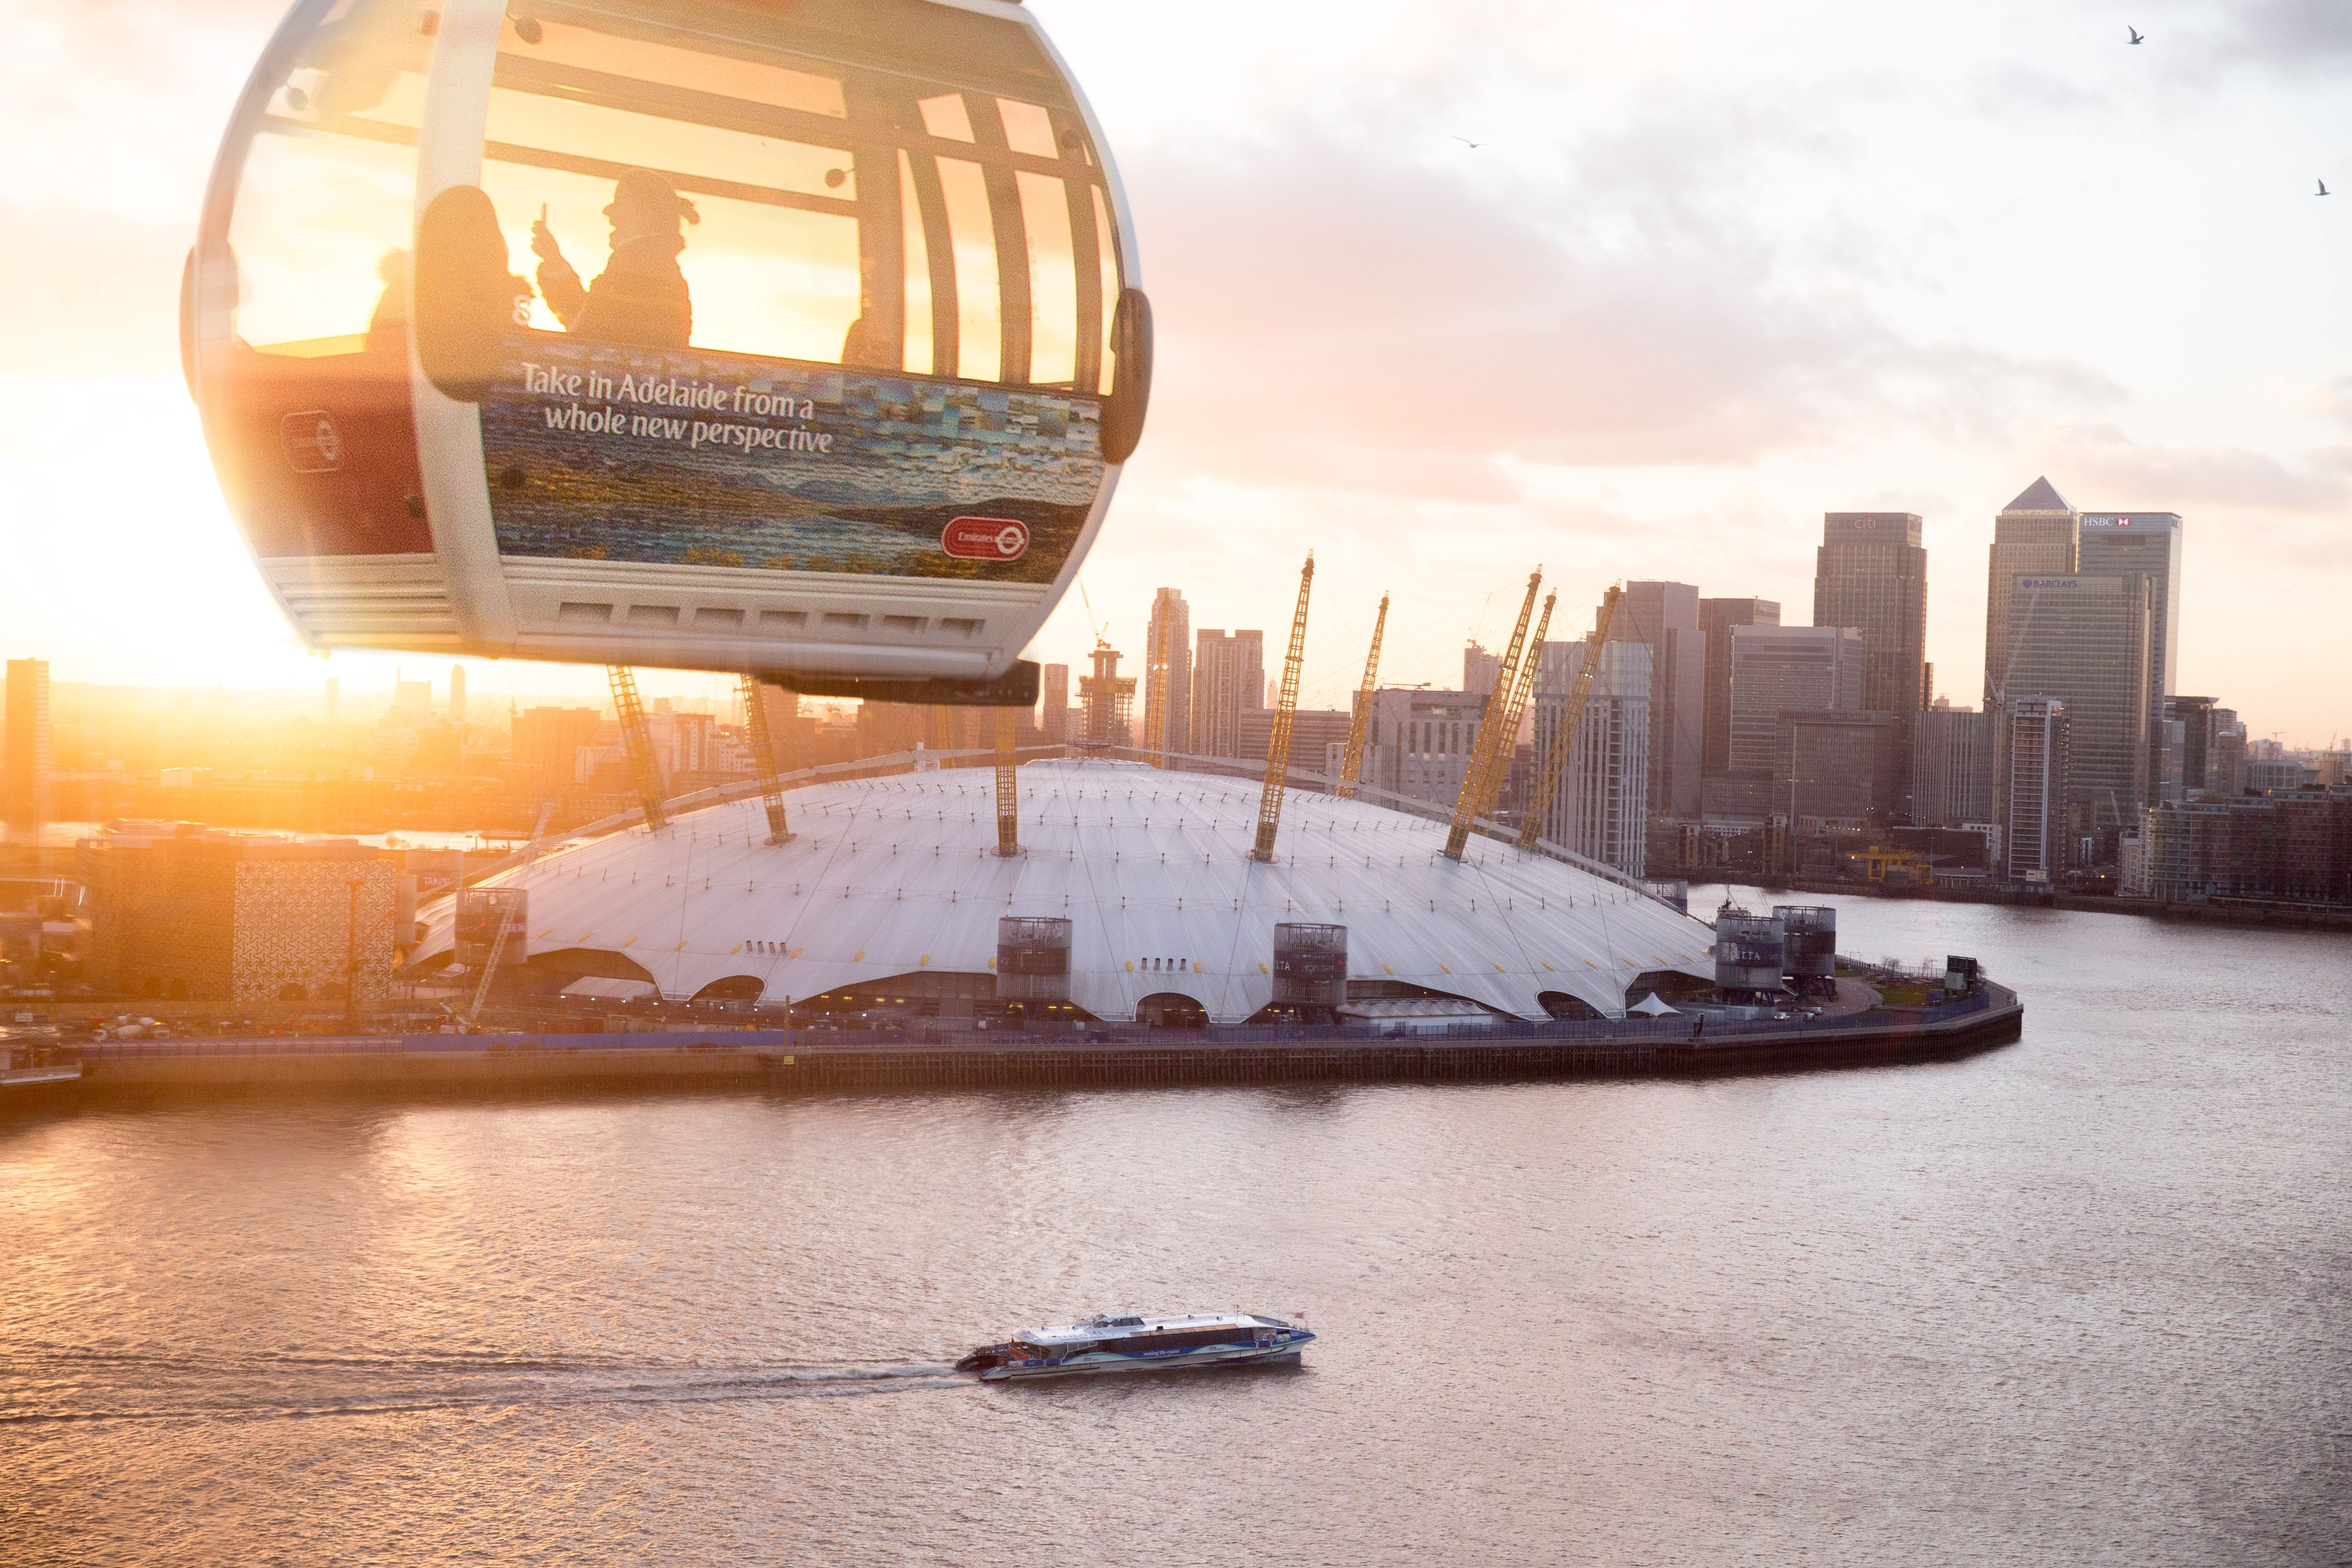 Aerial tram over the Thames in London